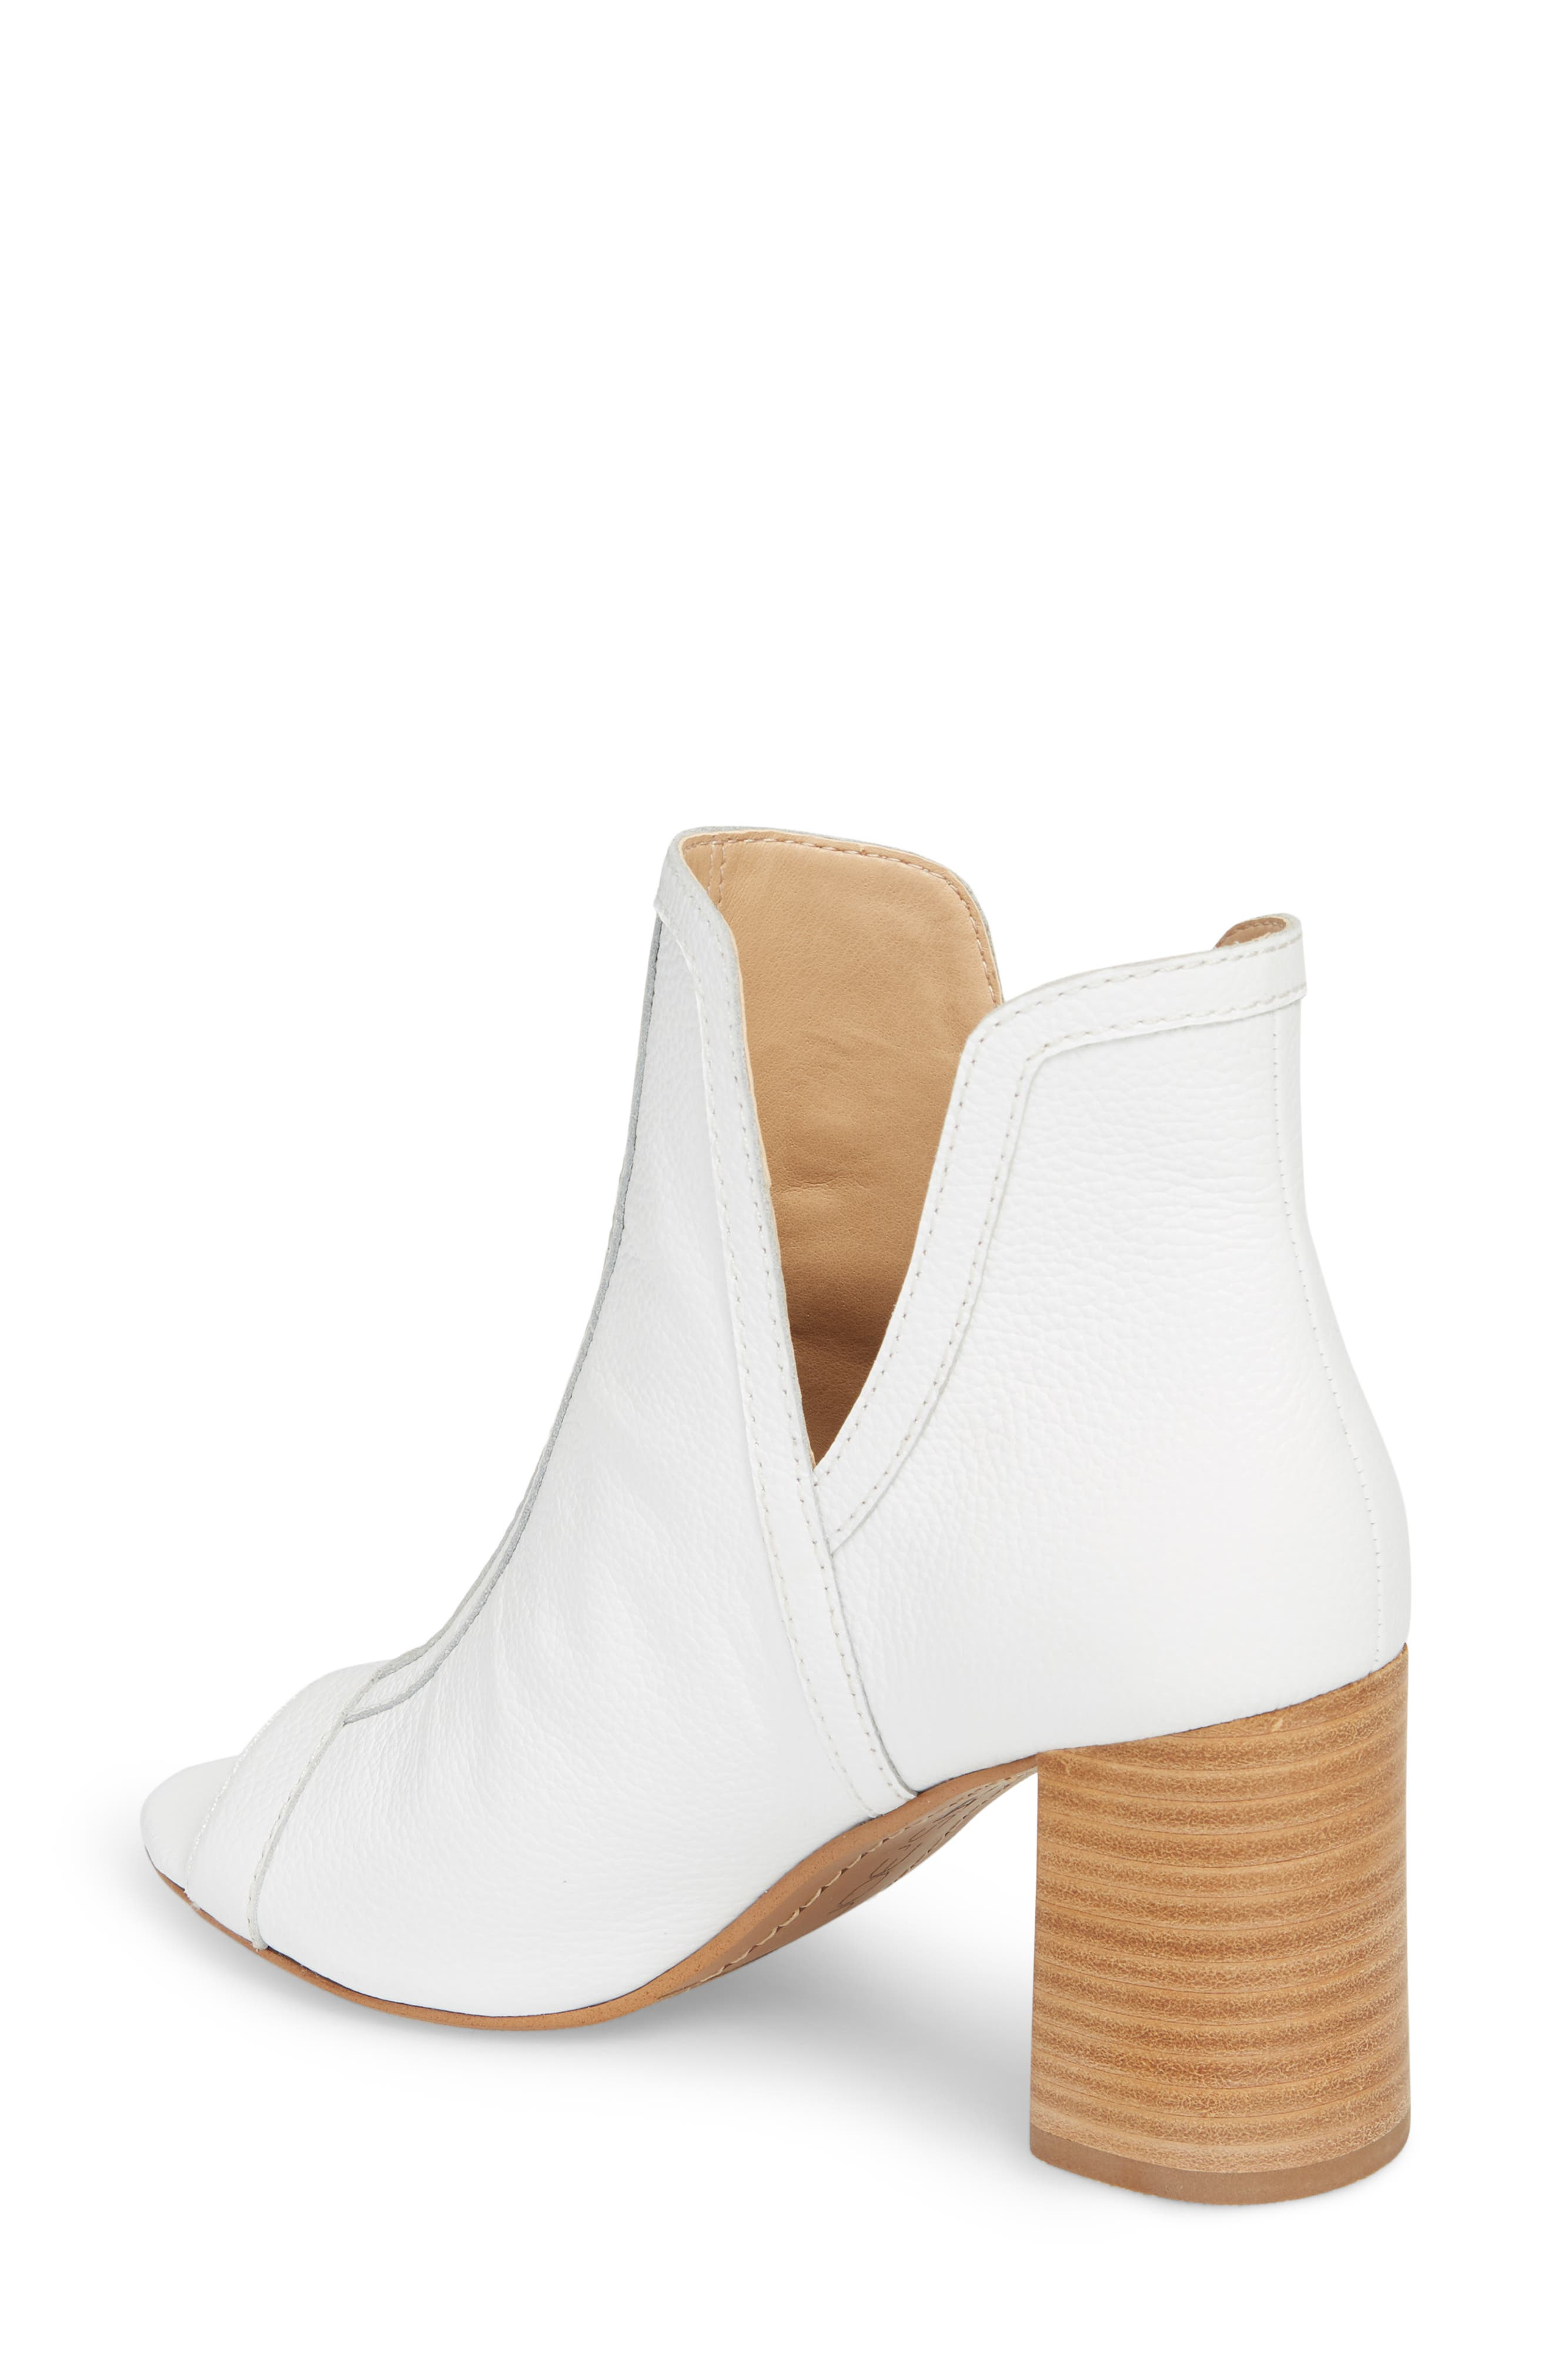 Marla Bootie,                             Alternate thumbnail 2, color,                             WHITE LEATHER